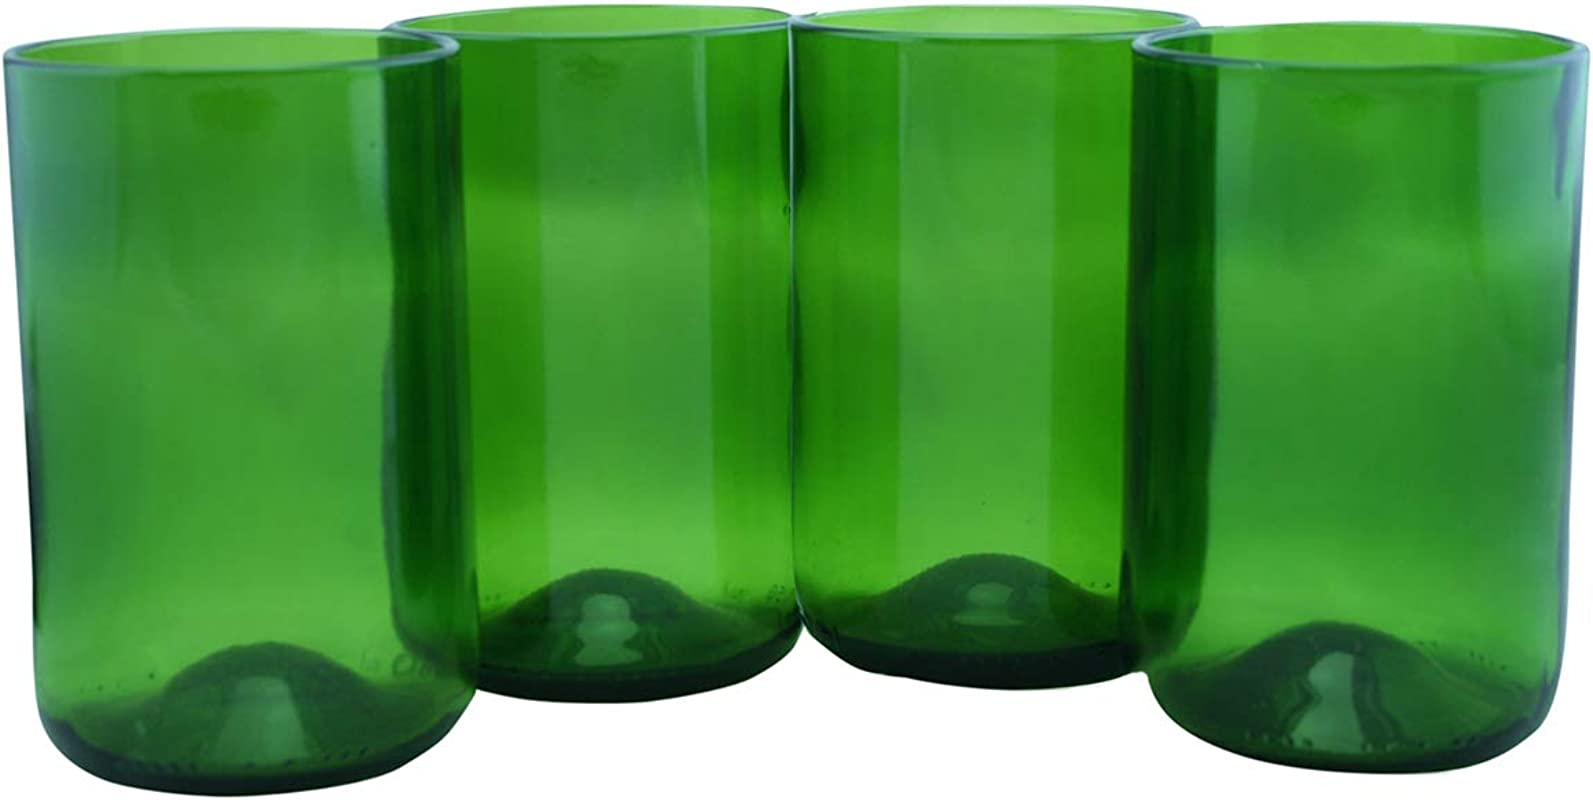 Tumblers Drinking Glasses Made From Recycled Wine Bottles 12 Oz Set Of 4 Dark Green 12 Oz